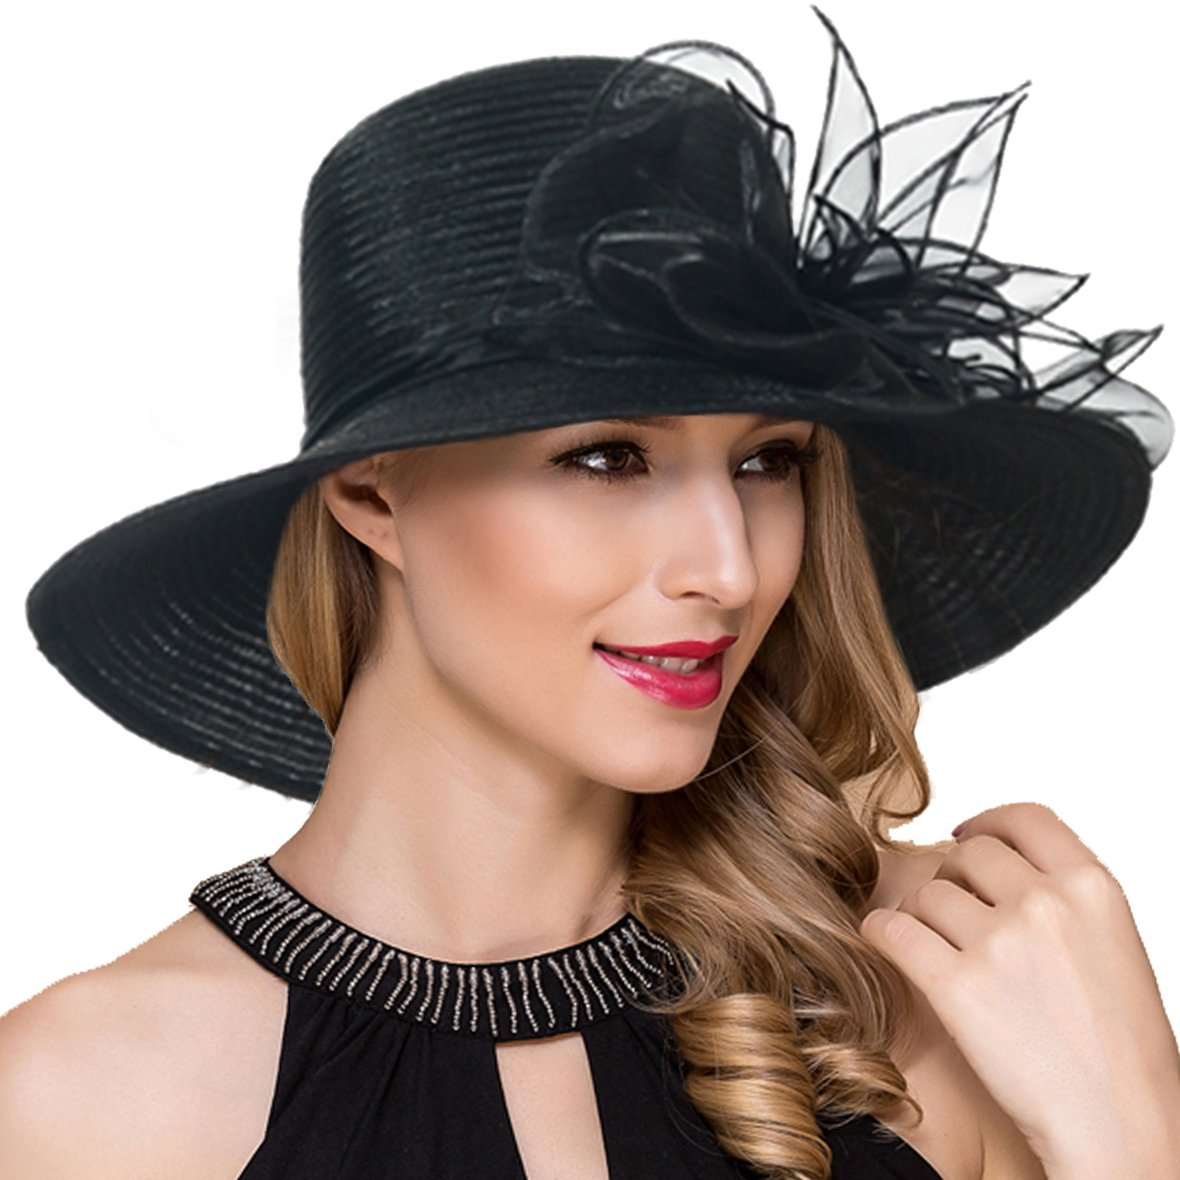 84b72f2541509 Women Kentucky Derby Church Dress Cloche Hat Fascinator Floral Tea Party  Wedding Bucket Hat S052 (Black) at Amazon Women s Clothing store